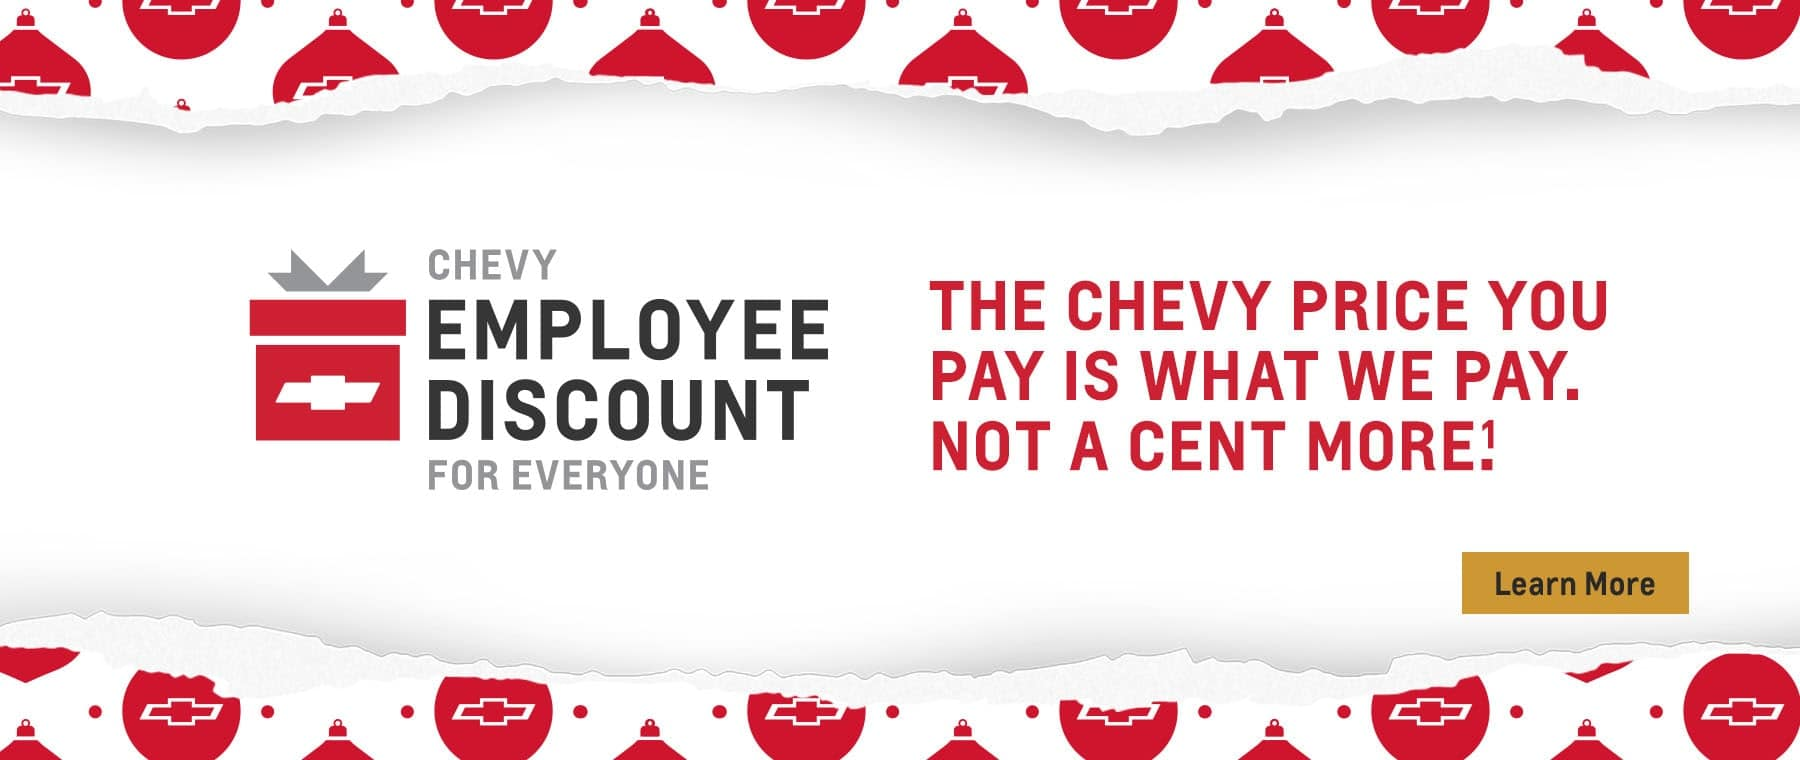 The Chevy Employee Discount For Everyone. The Chevy Price you pay is what we pay. Not a cent more.